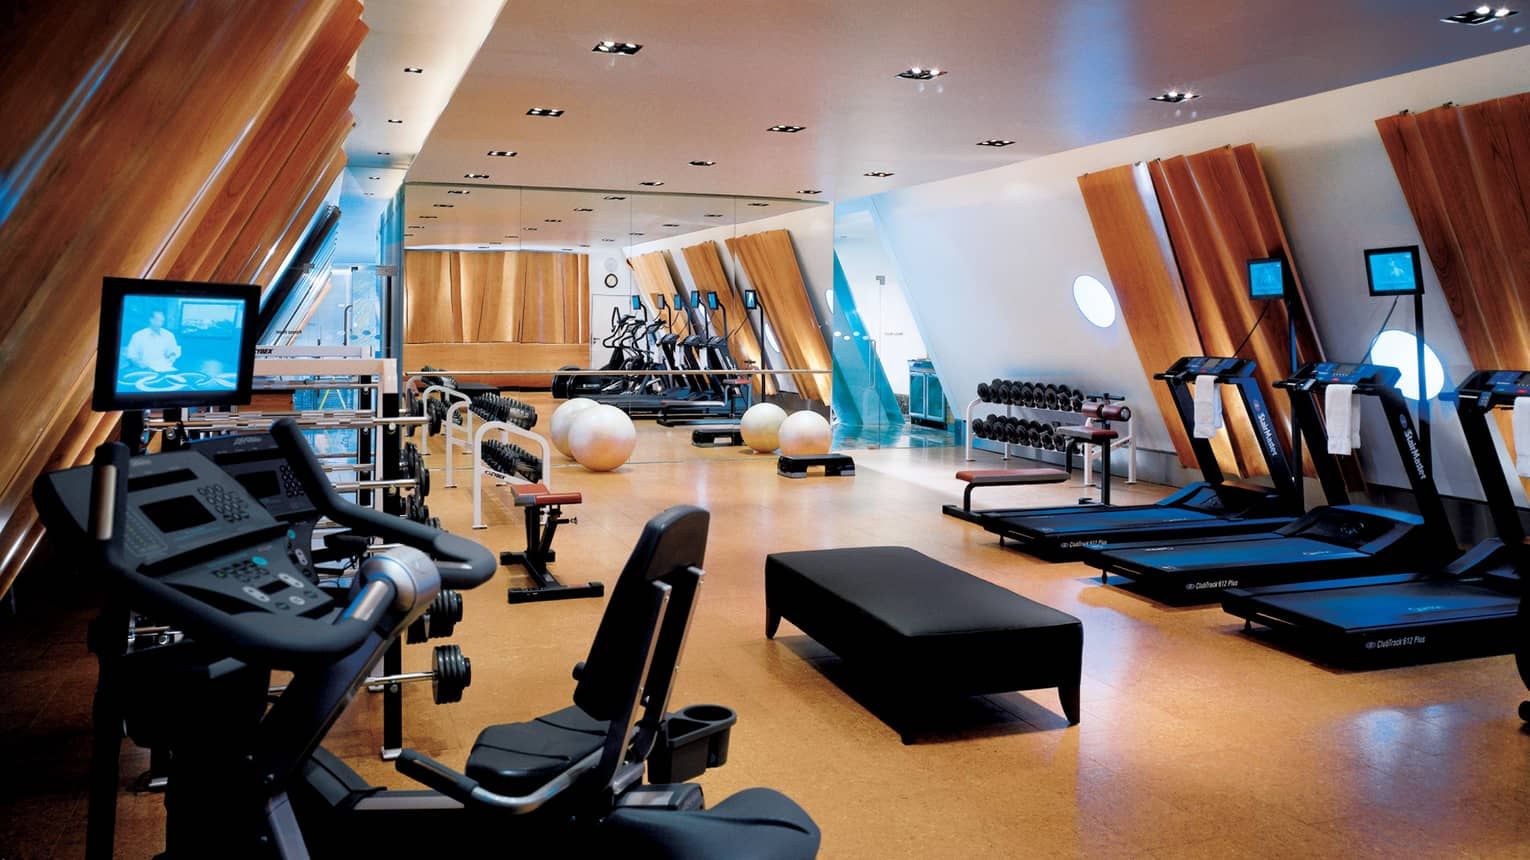 Fitness Centre cardio machines, equipment under sloped ceilings with wood panels